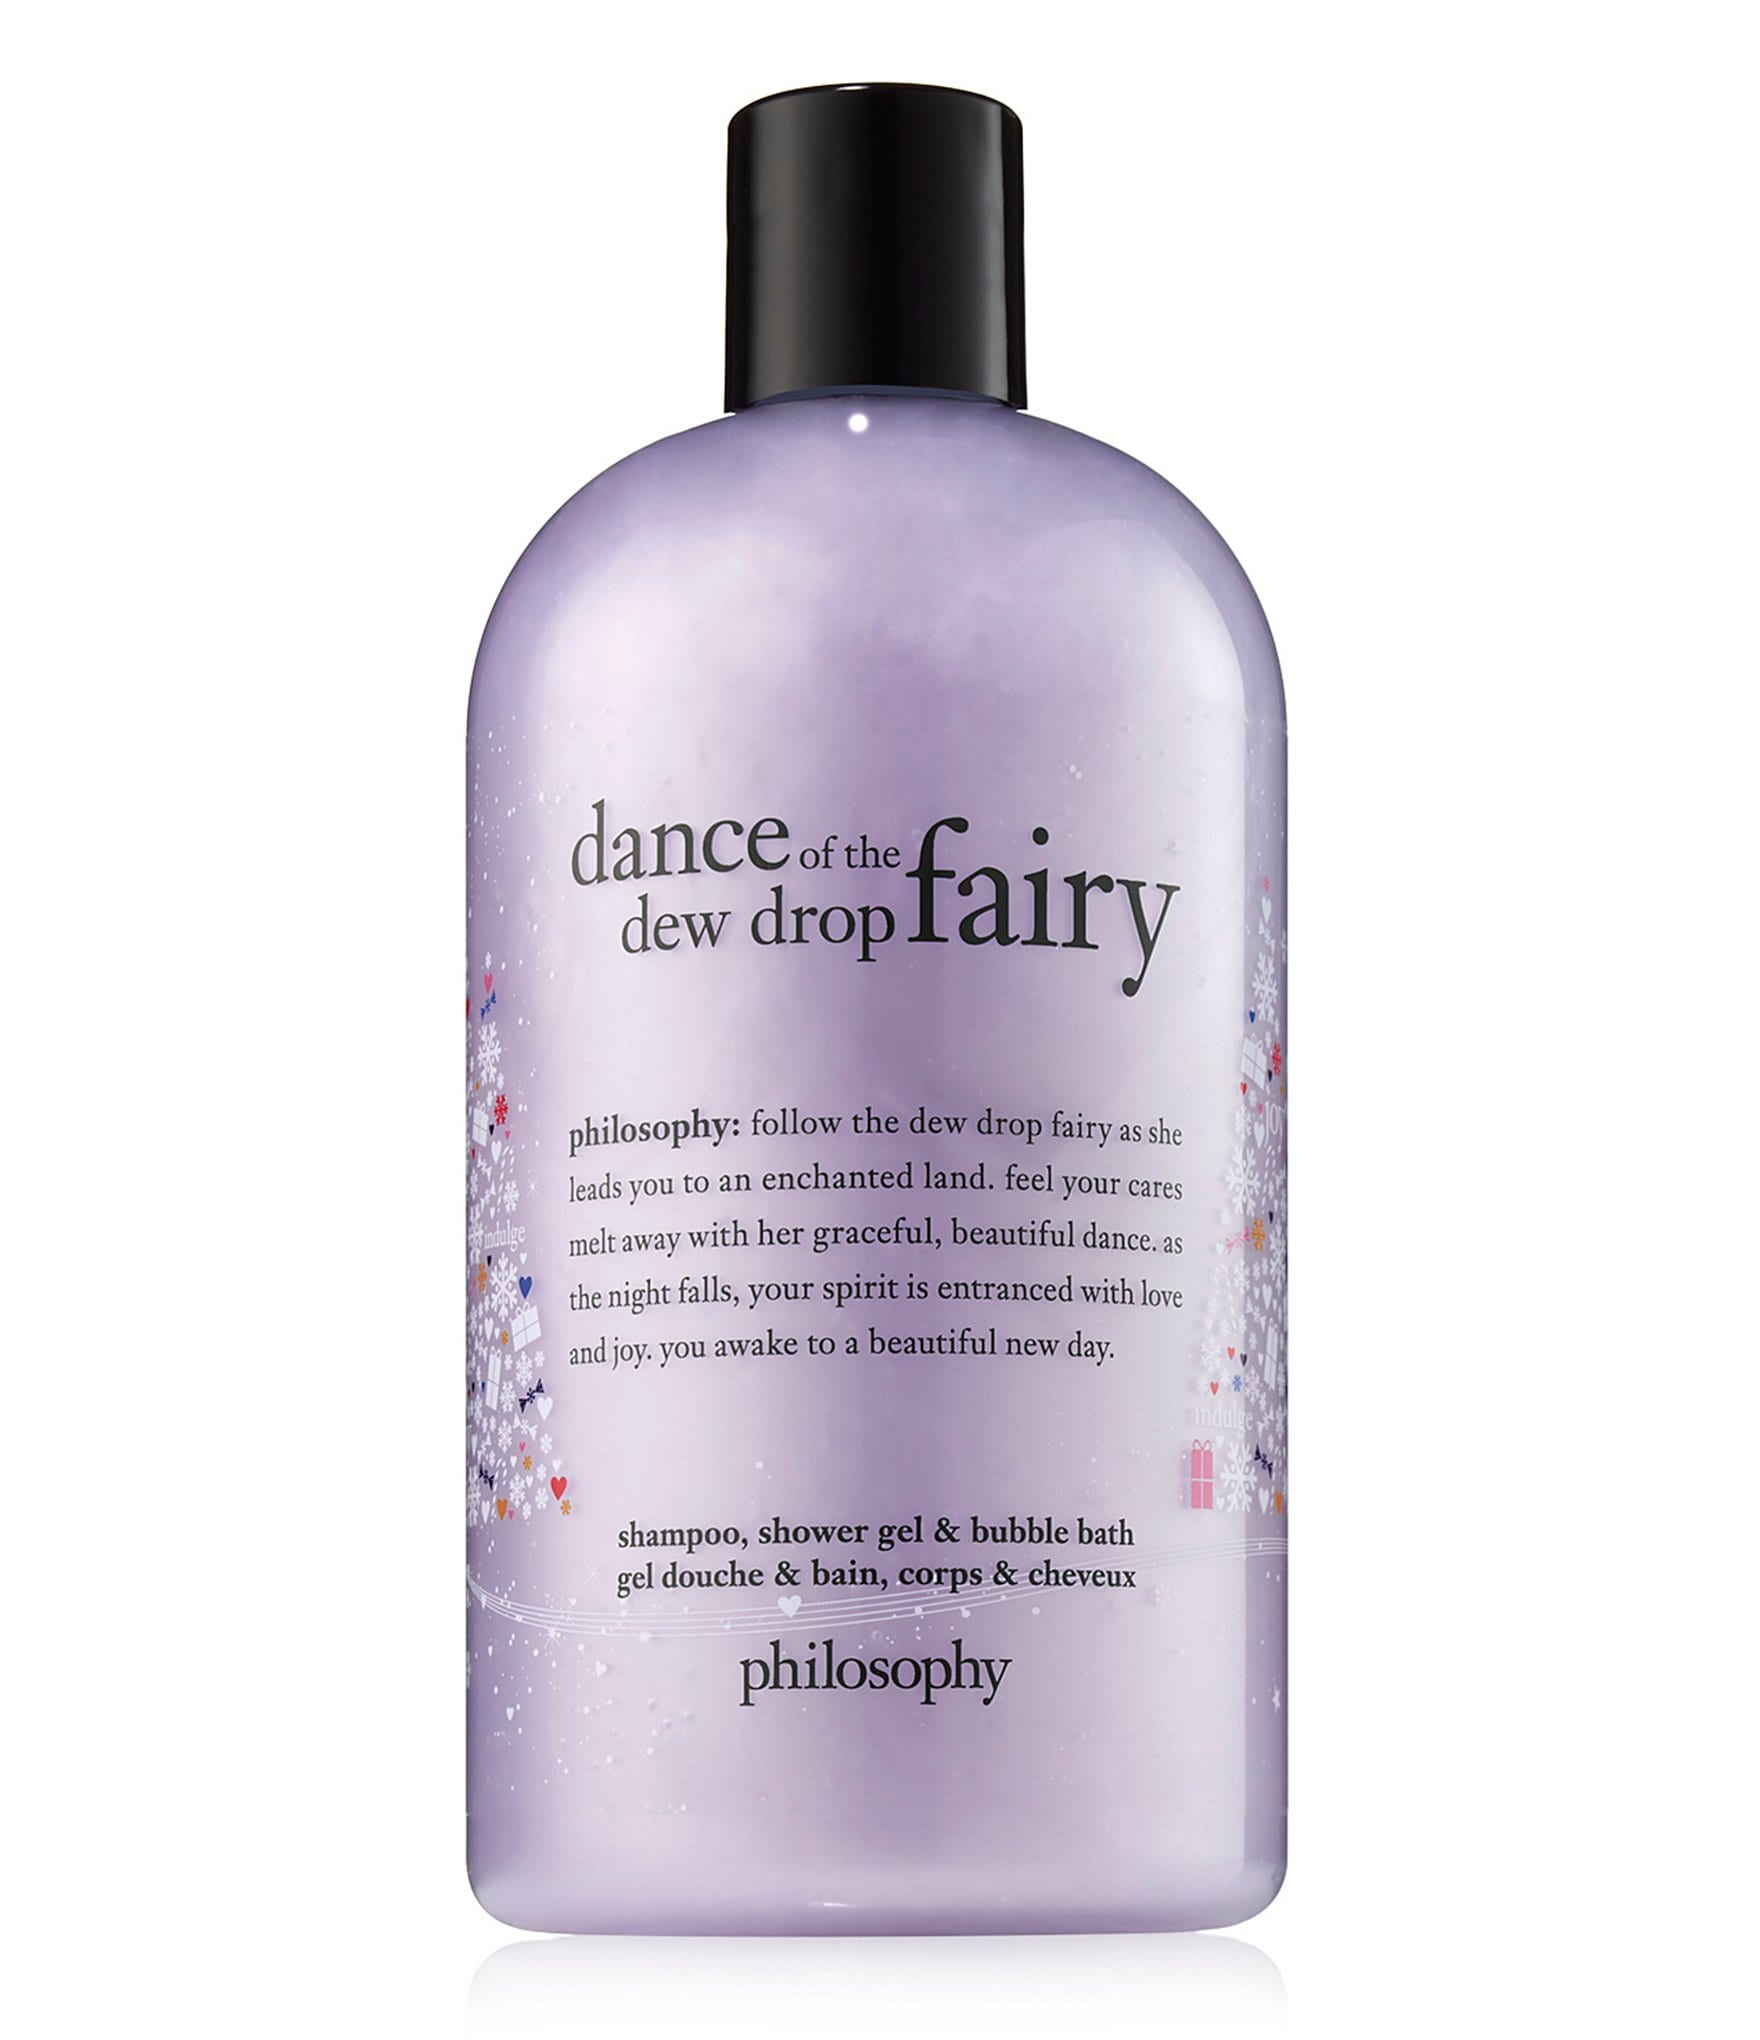 Philosophy Dance Of The Dew Drop Fairy Shampoo Shower Gel